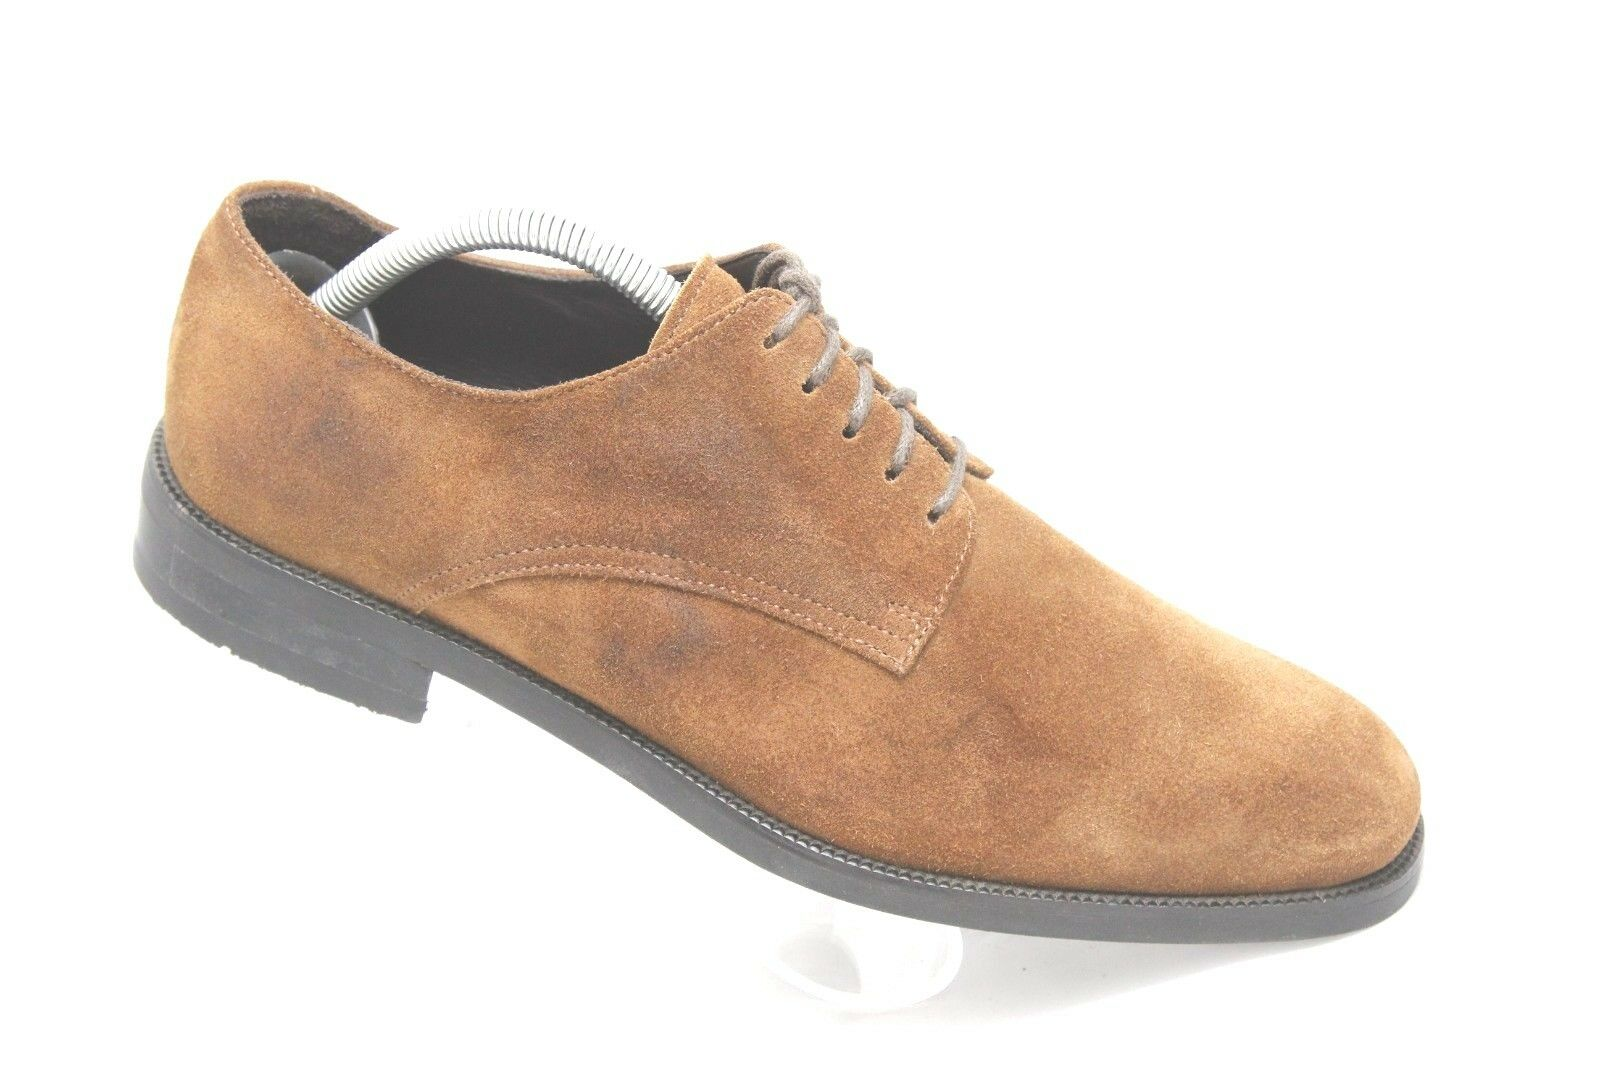 Saks Fifth Avenue Uomo Size 8 Brown Suede Pelle Dress Shoes Made In Italy